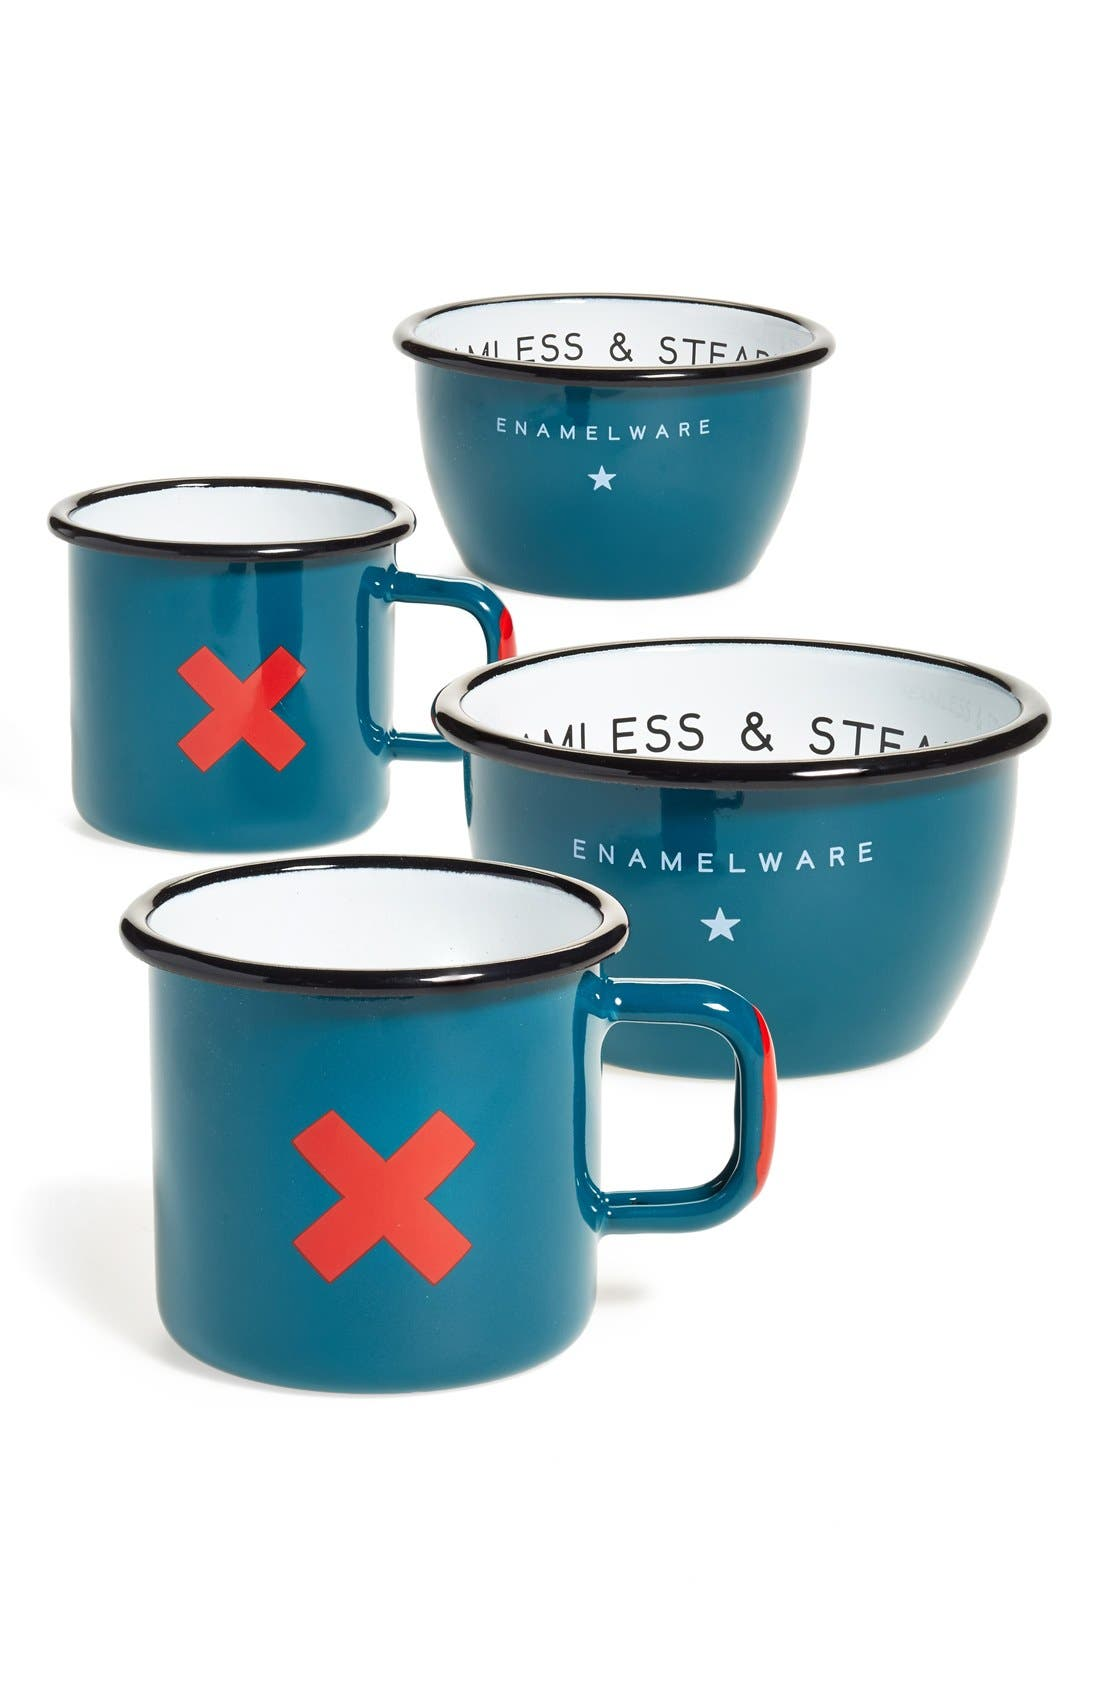 BEST MADE CO.,                             Best Made Co 'Seamless & Steadfast' Enamelware Cups, Bowls & Plates,                             Alternate thumbnail 2, color,                             400